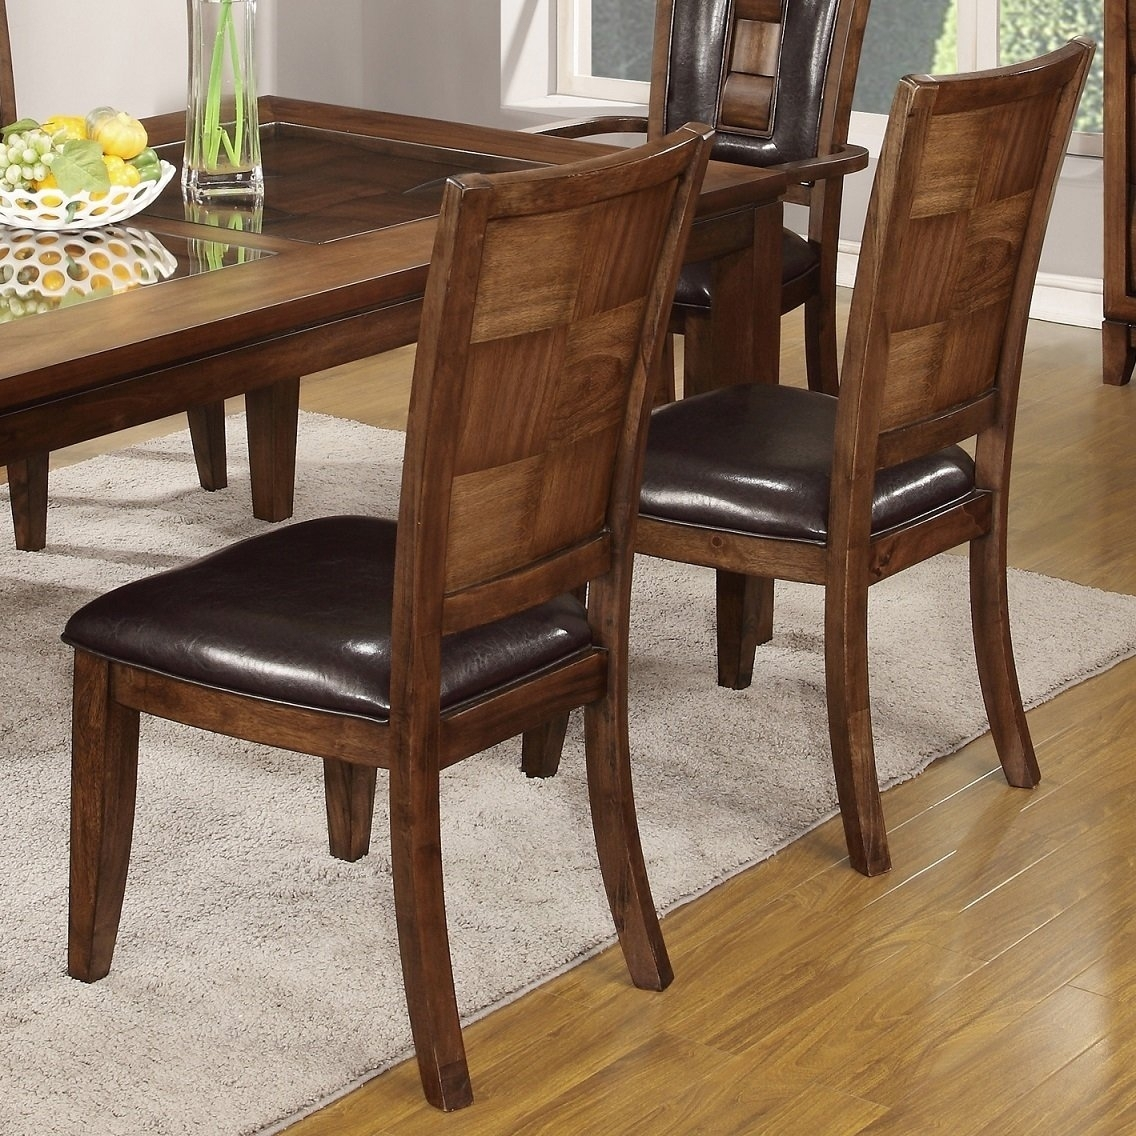 Shop Calais 7 Piece Parquet Finish Solid Wood Dining Table With 6 Pertaining To Most Up To Date Parquet 7 Piece Dining Sets (View 9 of 20)